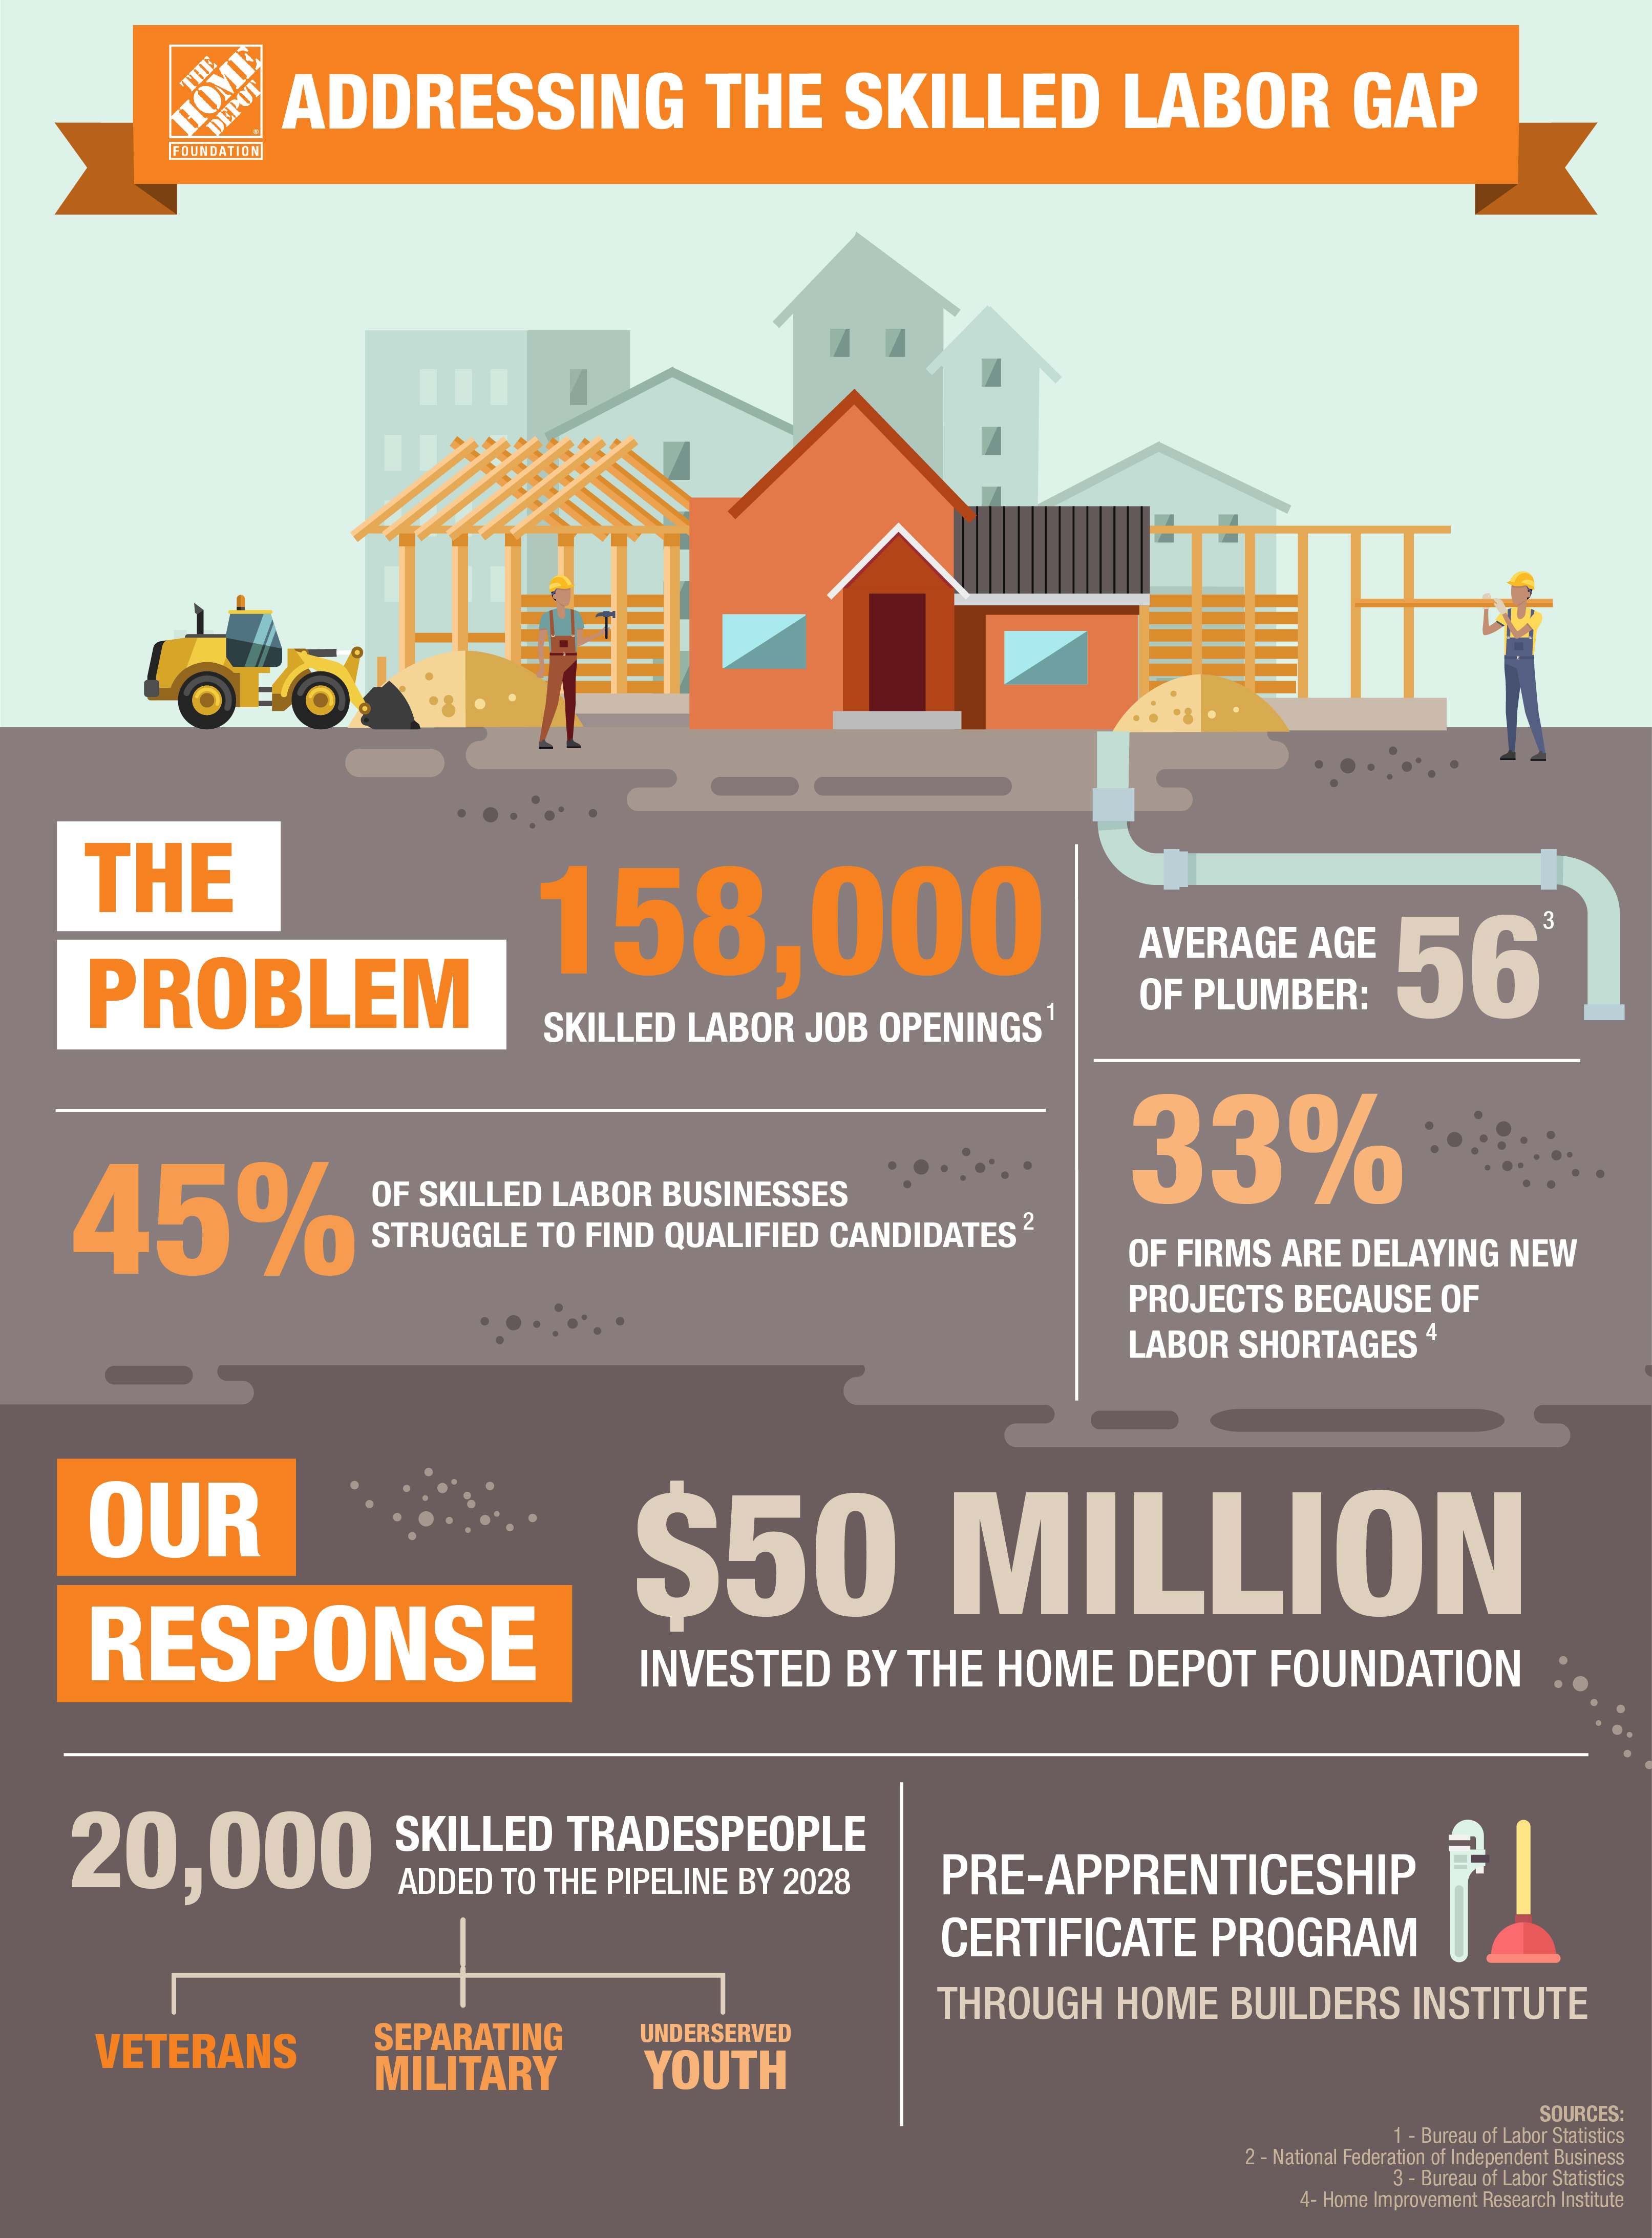 Addressing the skilled labor gap in America.